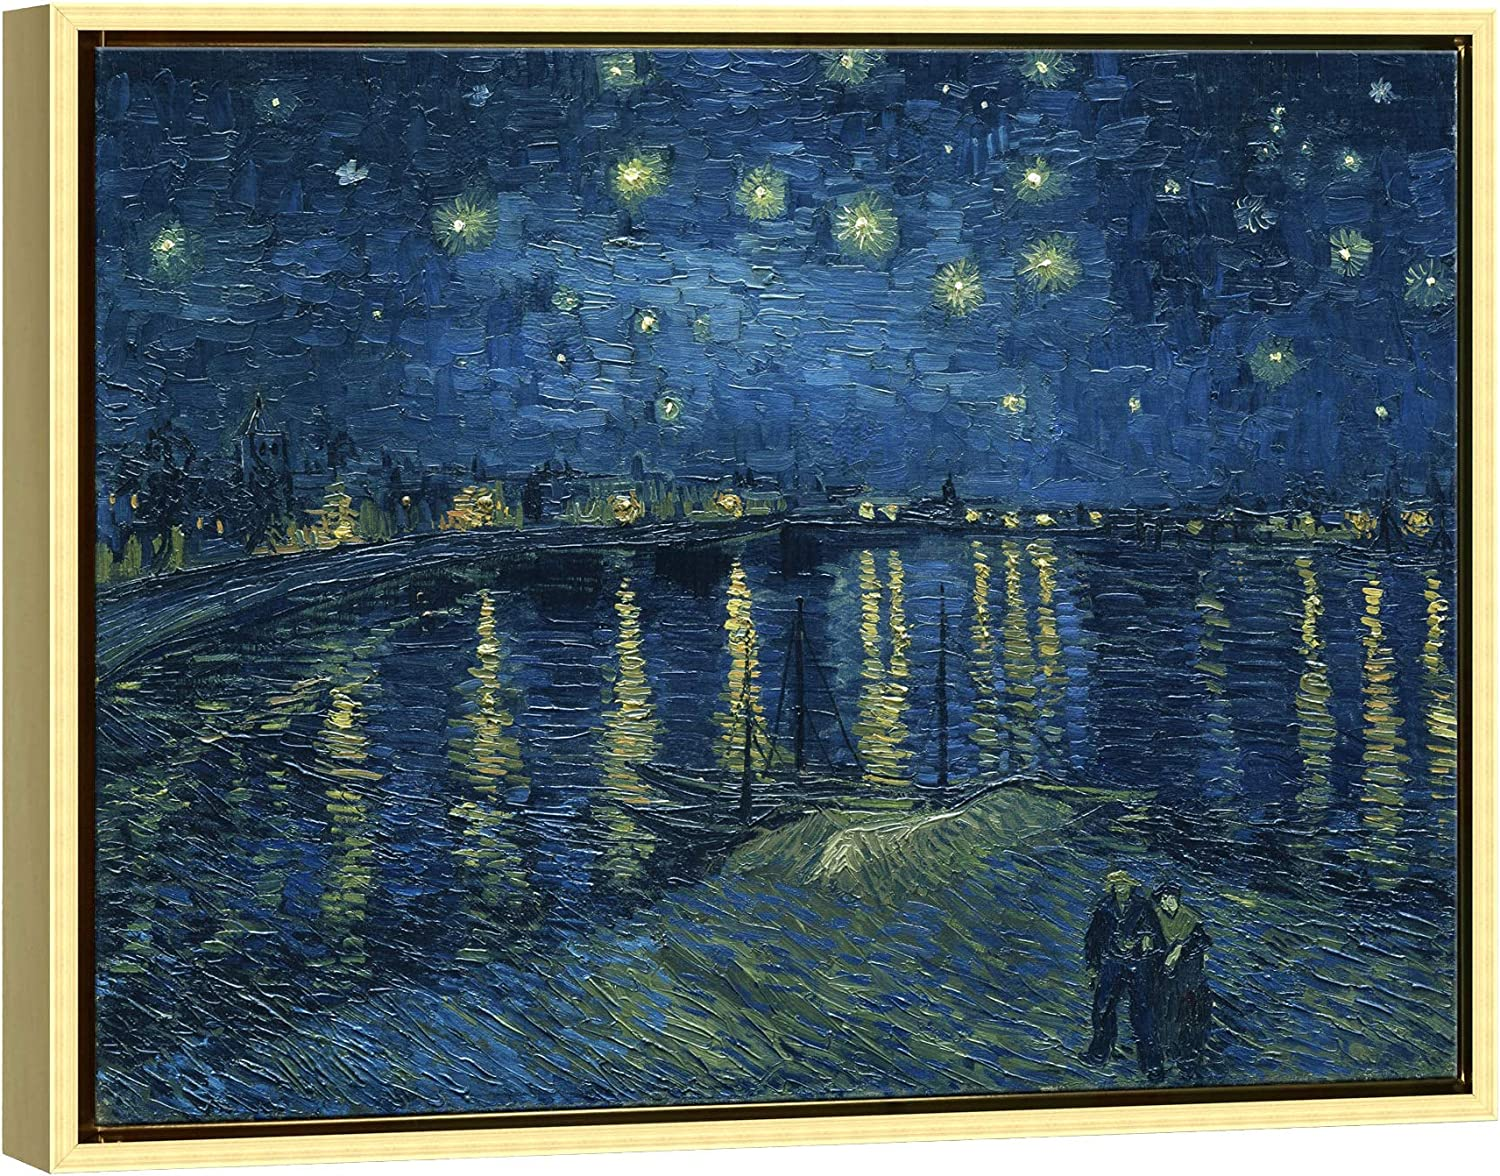 Wieco Art Framed Art Giclee Canvas Prints of Starry Night Over The Rhone Canvas Prints Wall Art by Van Gogh Paintings Reproduction Abstract Artwork for Wall Decor Golden Frame VAN-0026-3040GF